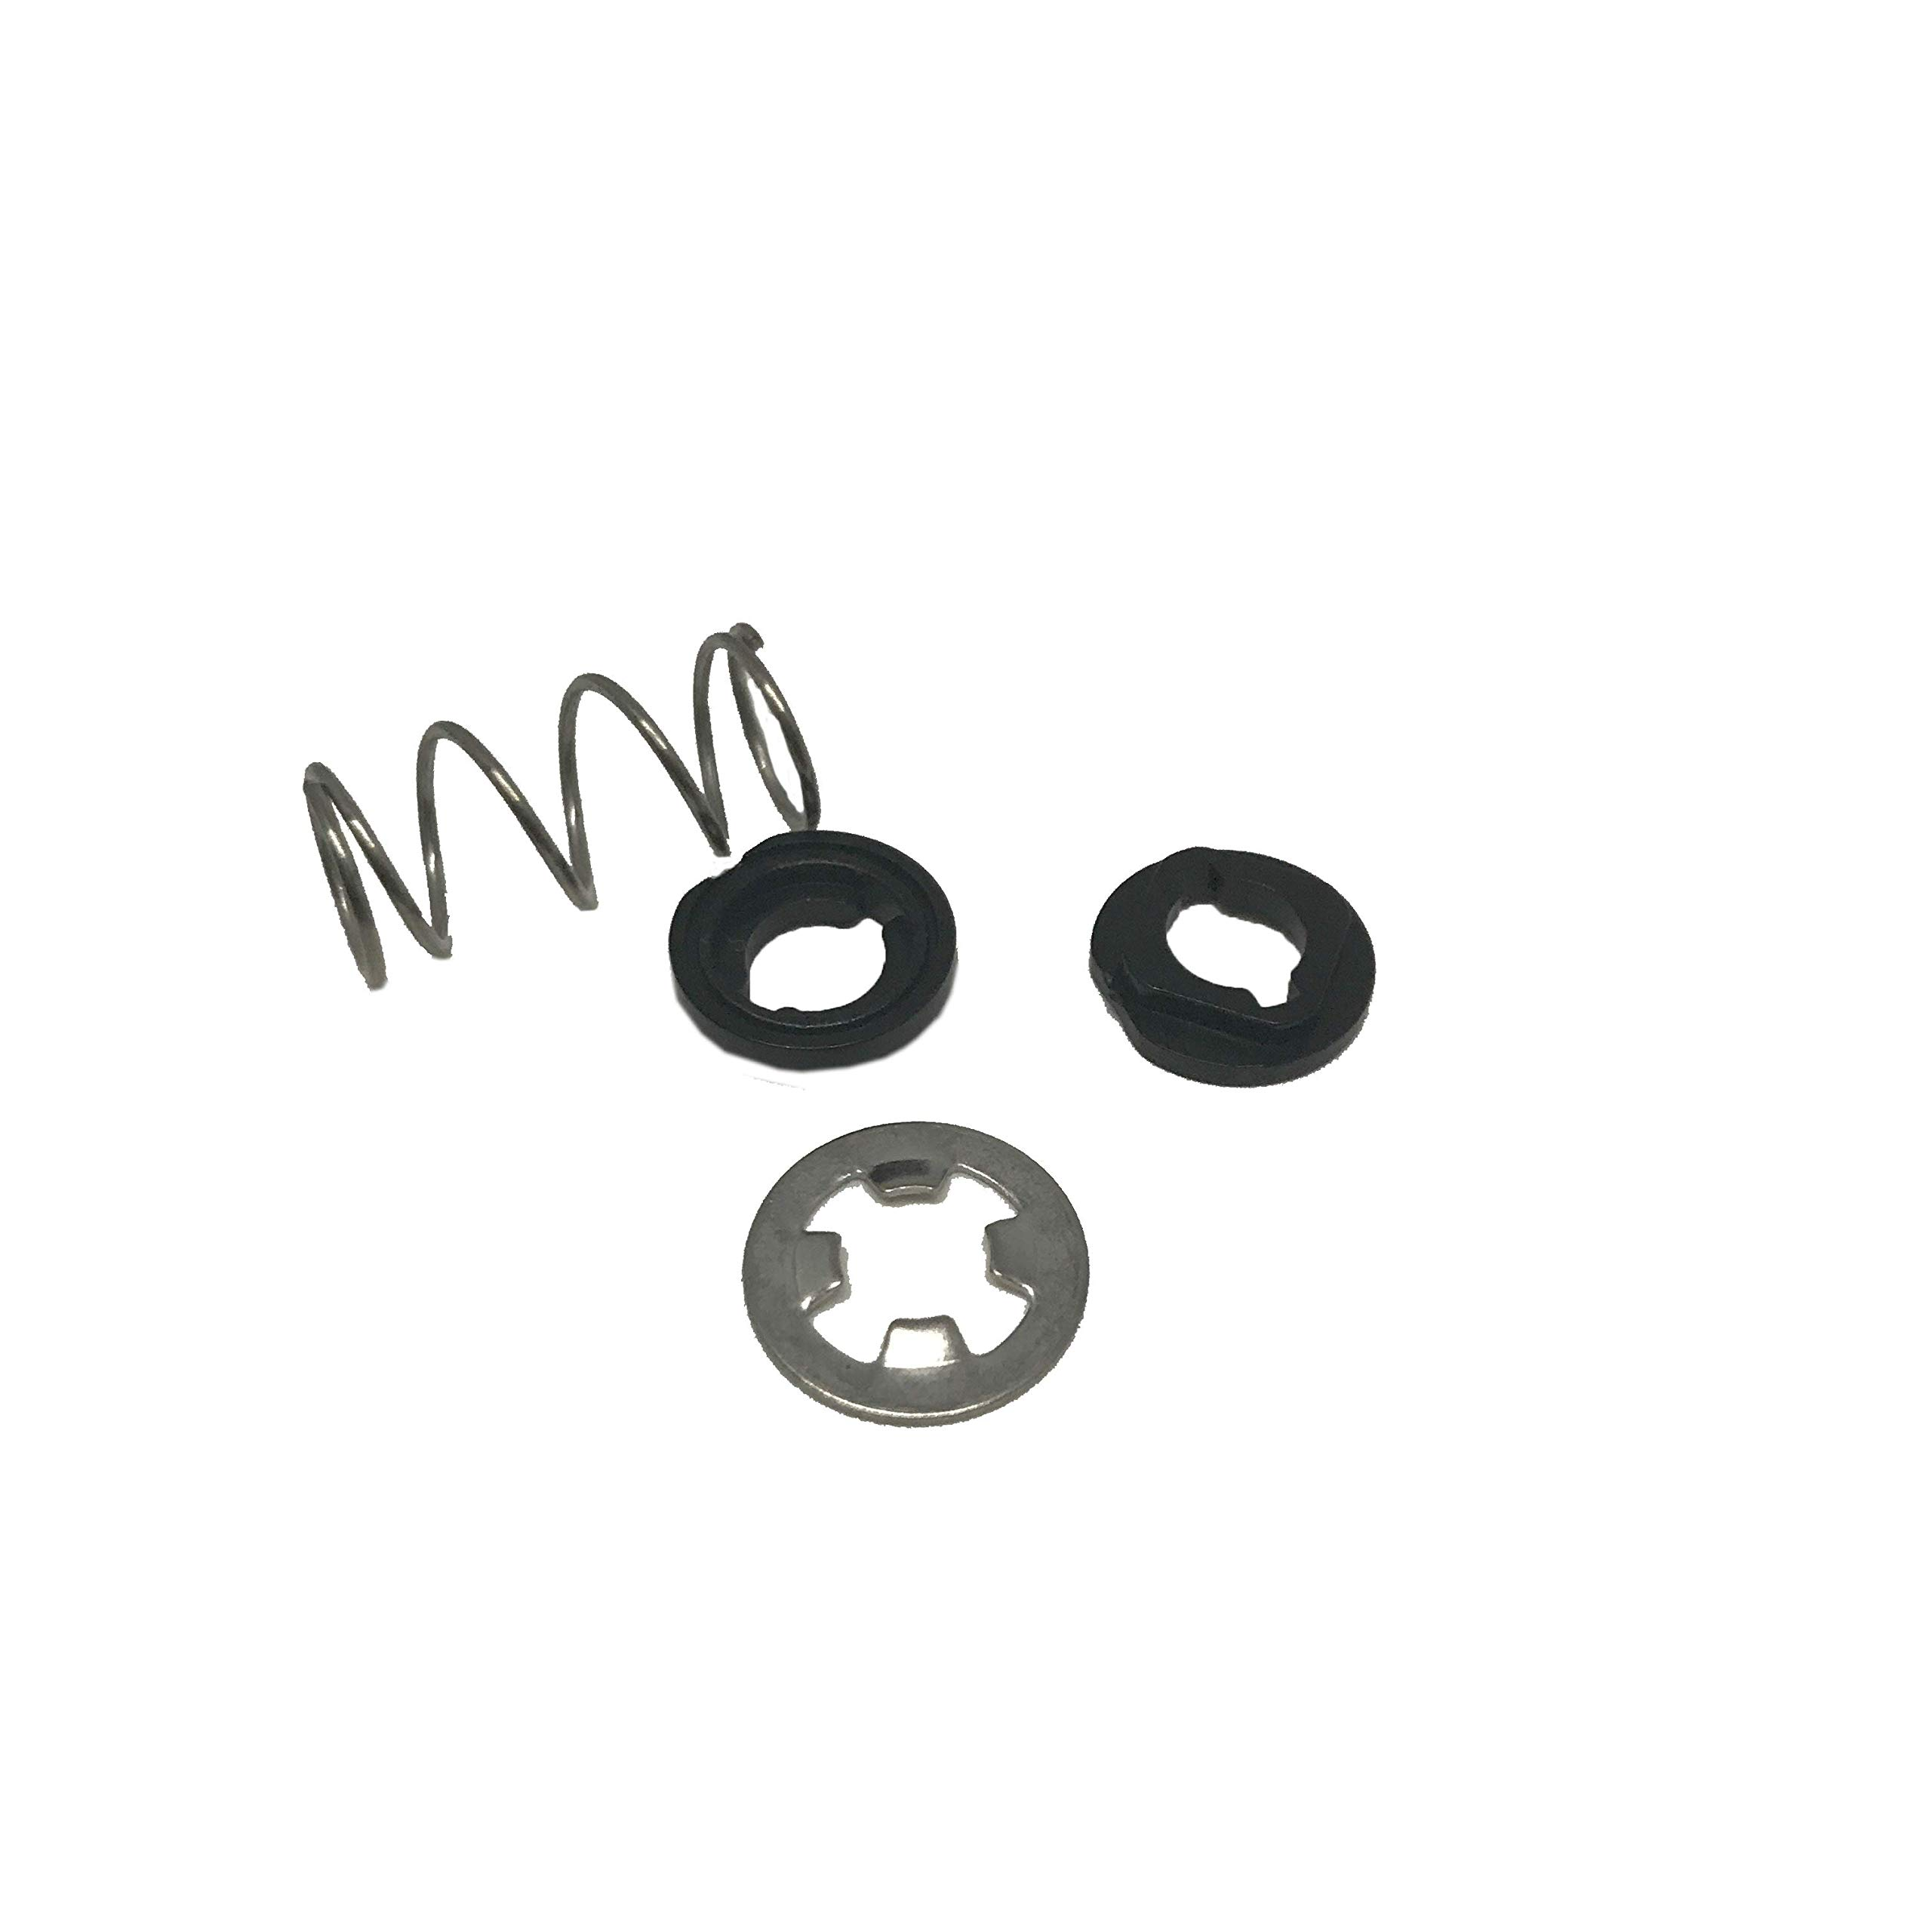 Replacement Washers and Spring for JavaPresse Manual Coffee Grinder - Complete Pack